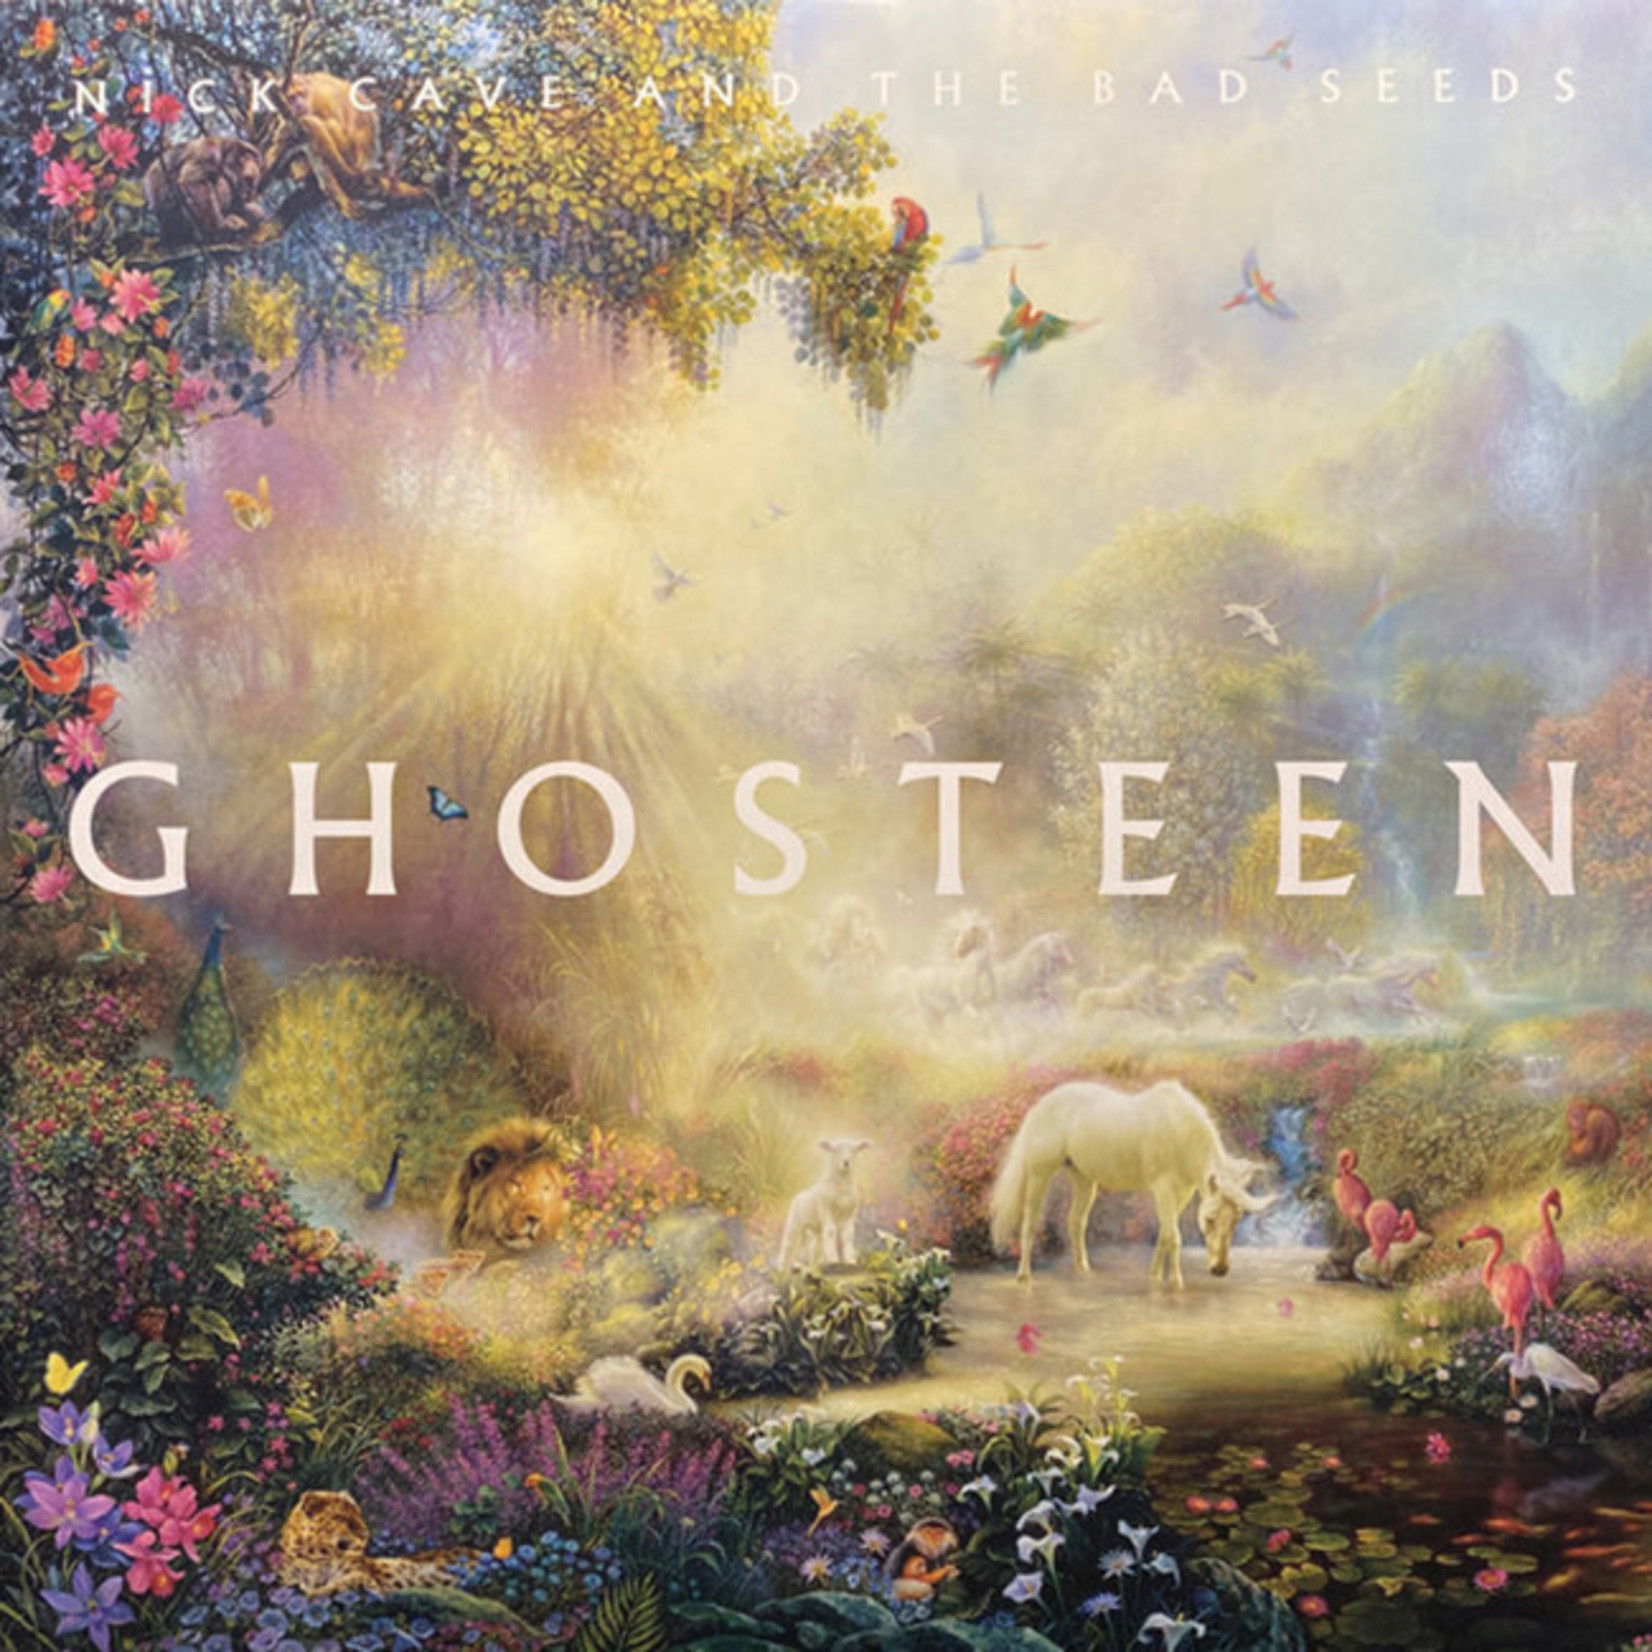 [New] Cave, Nick & the Bad Seeds: Ghosteen (2LP)